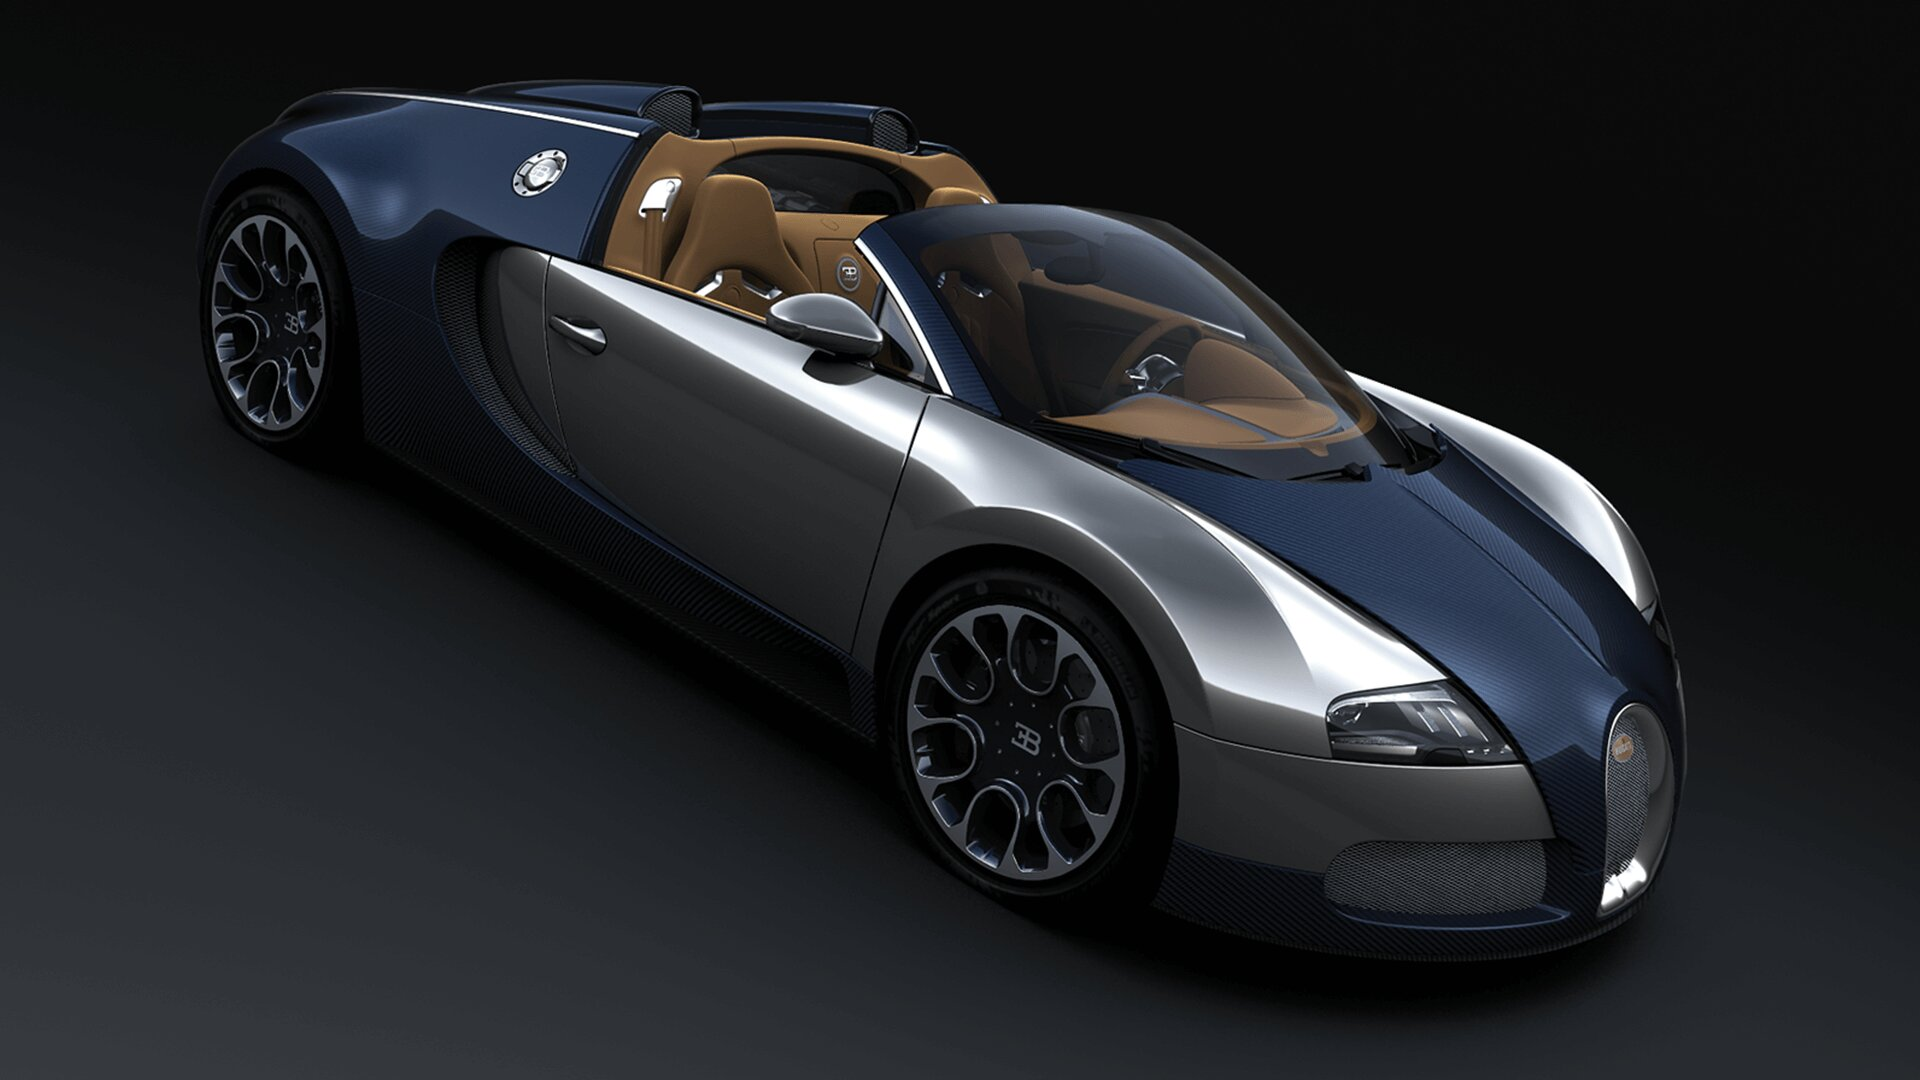 veyron bugatti view diamond wikimedia super file commons wiki sport side